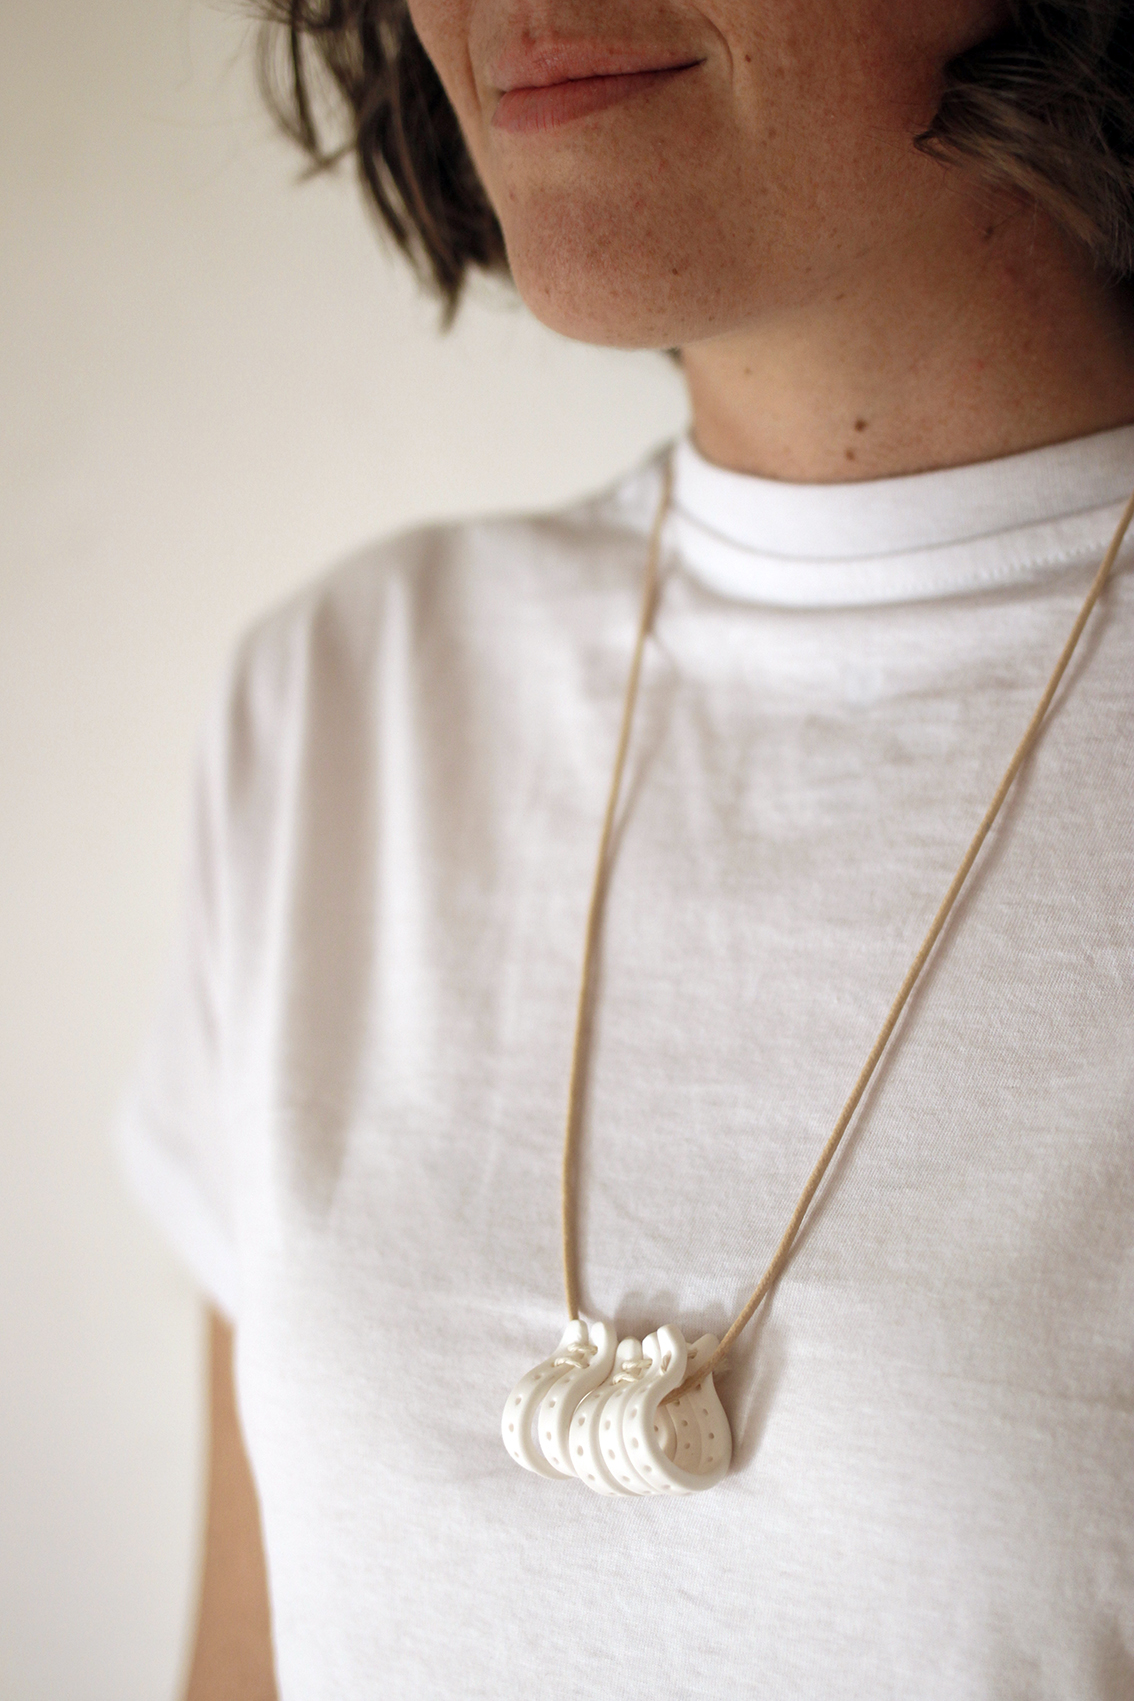 Necklace by  Whimsy Milieu.